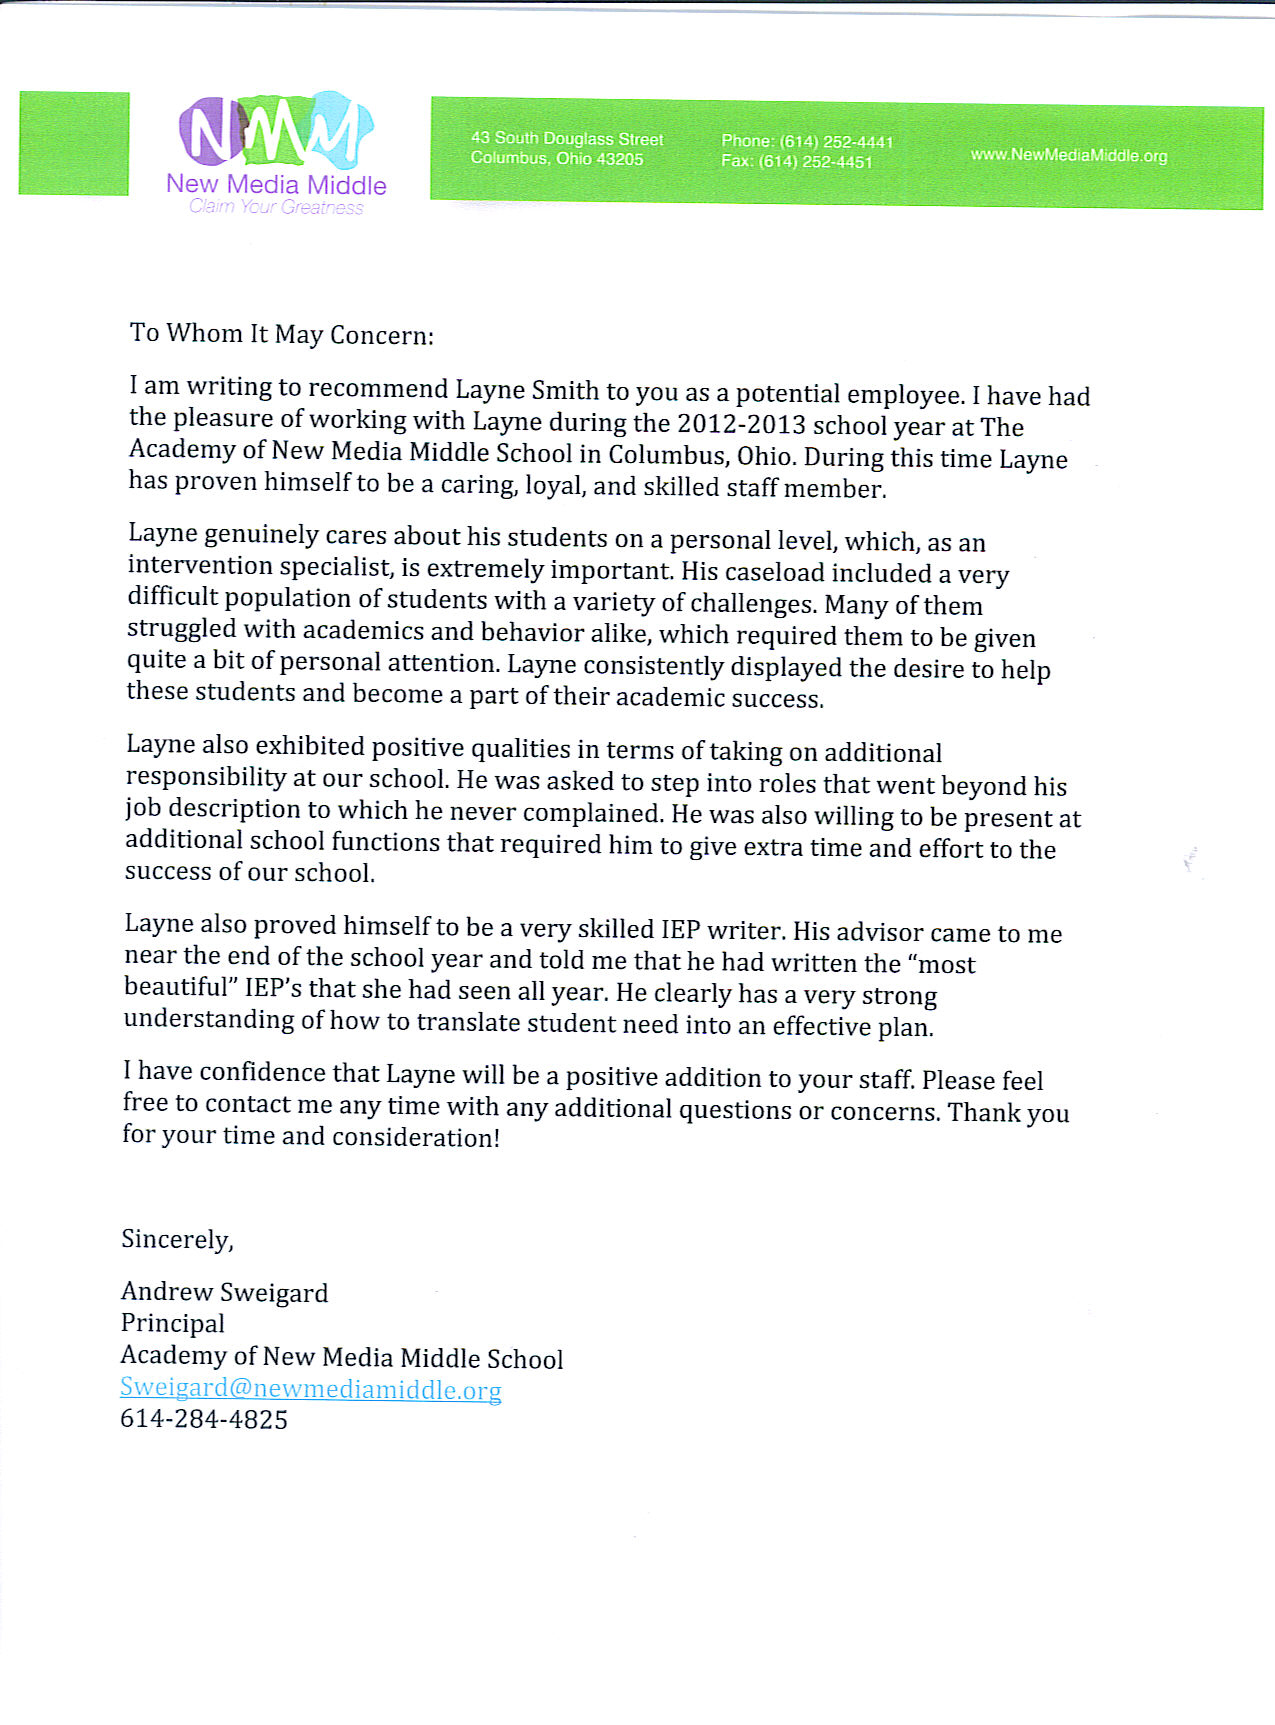 student letter to principal principal writes incredible letter to students regarding sweigard new media middle school